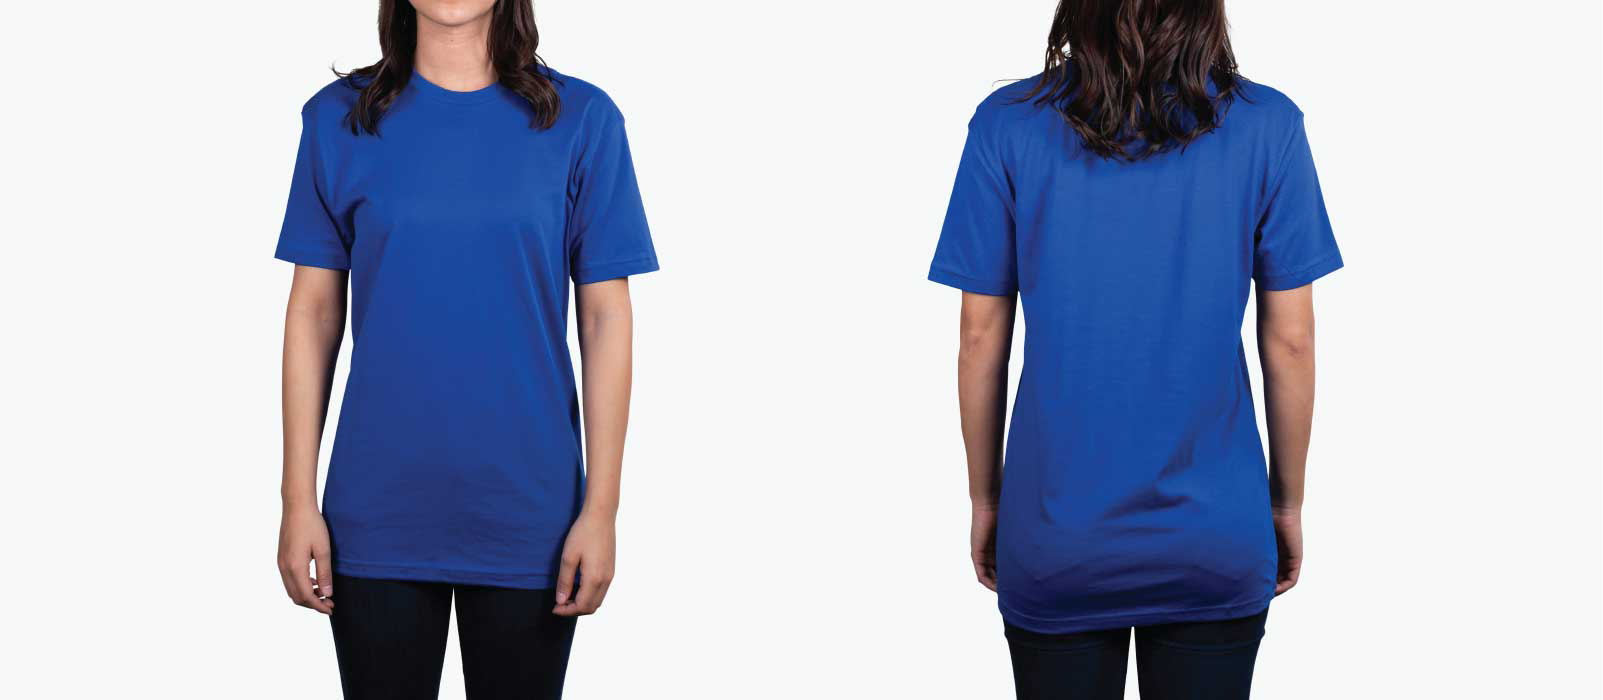 woman wearing royal blue shirt front and back